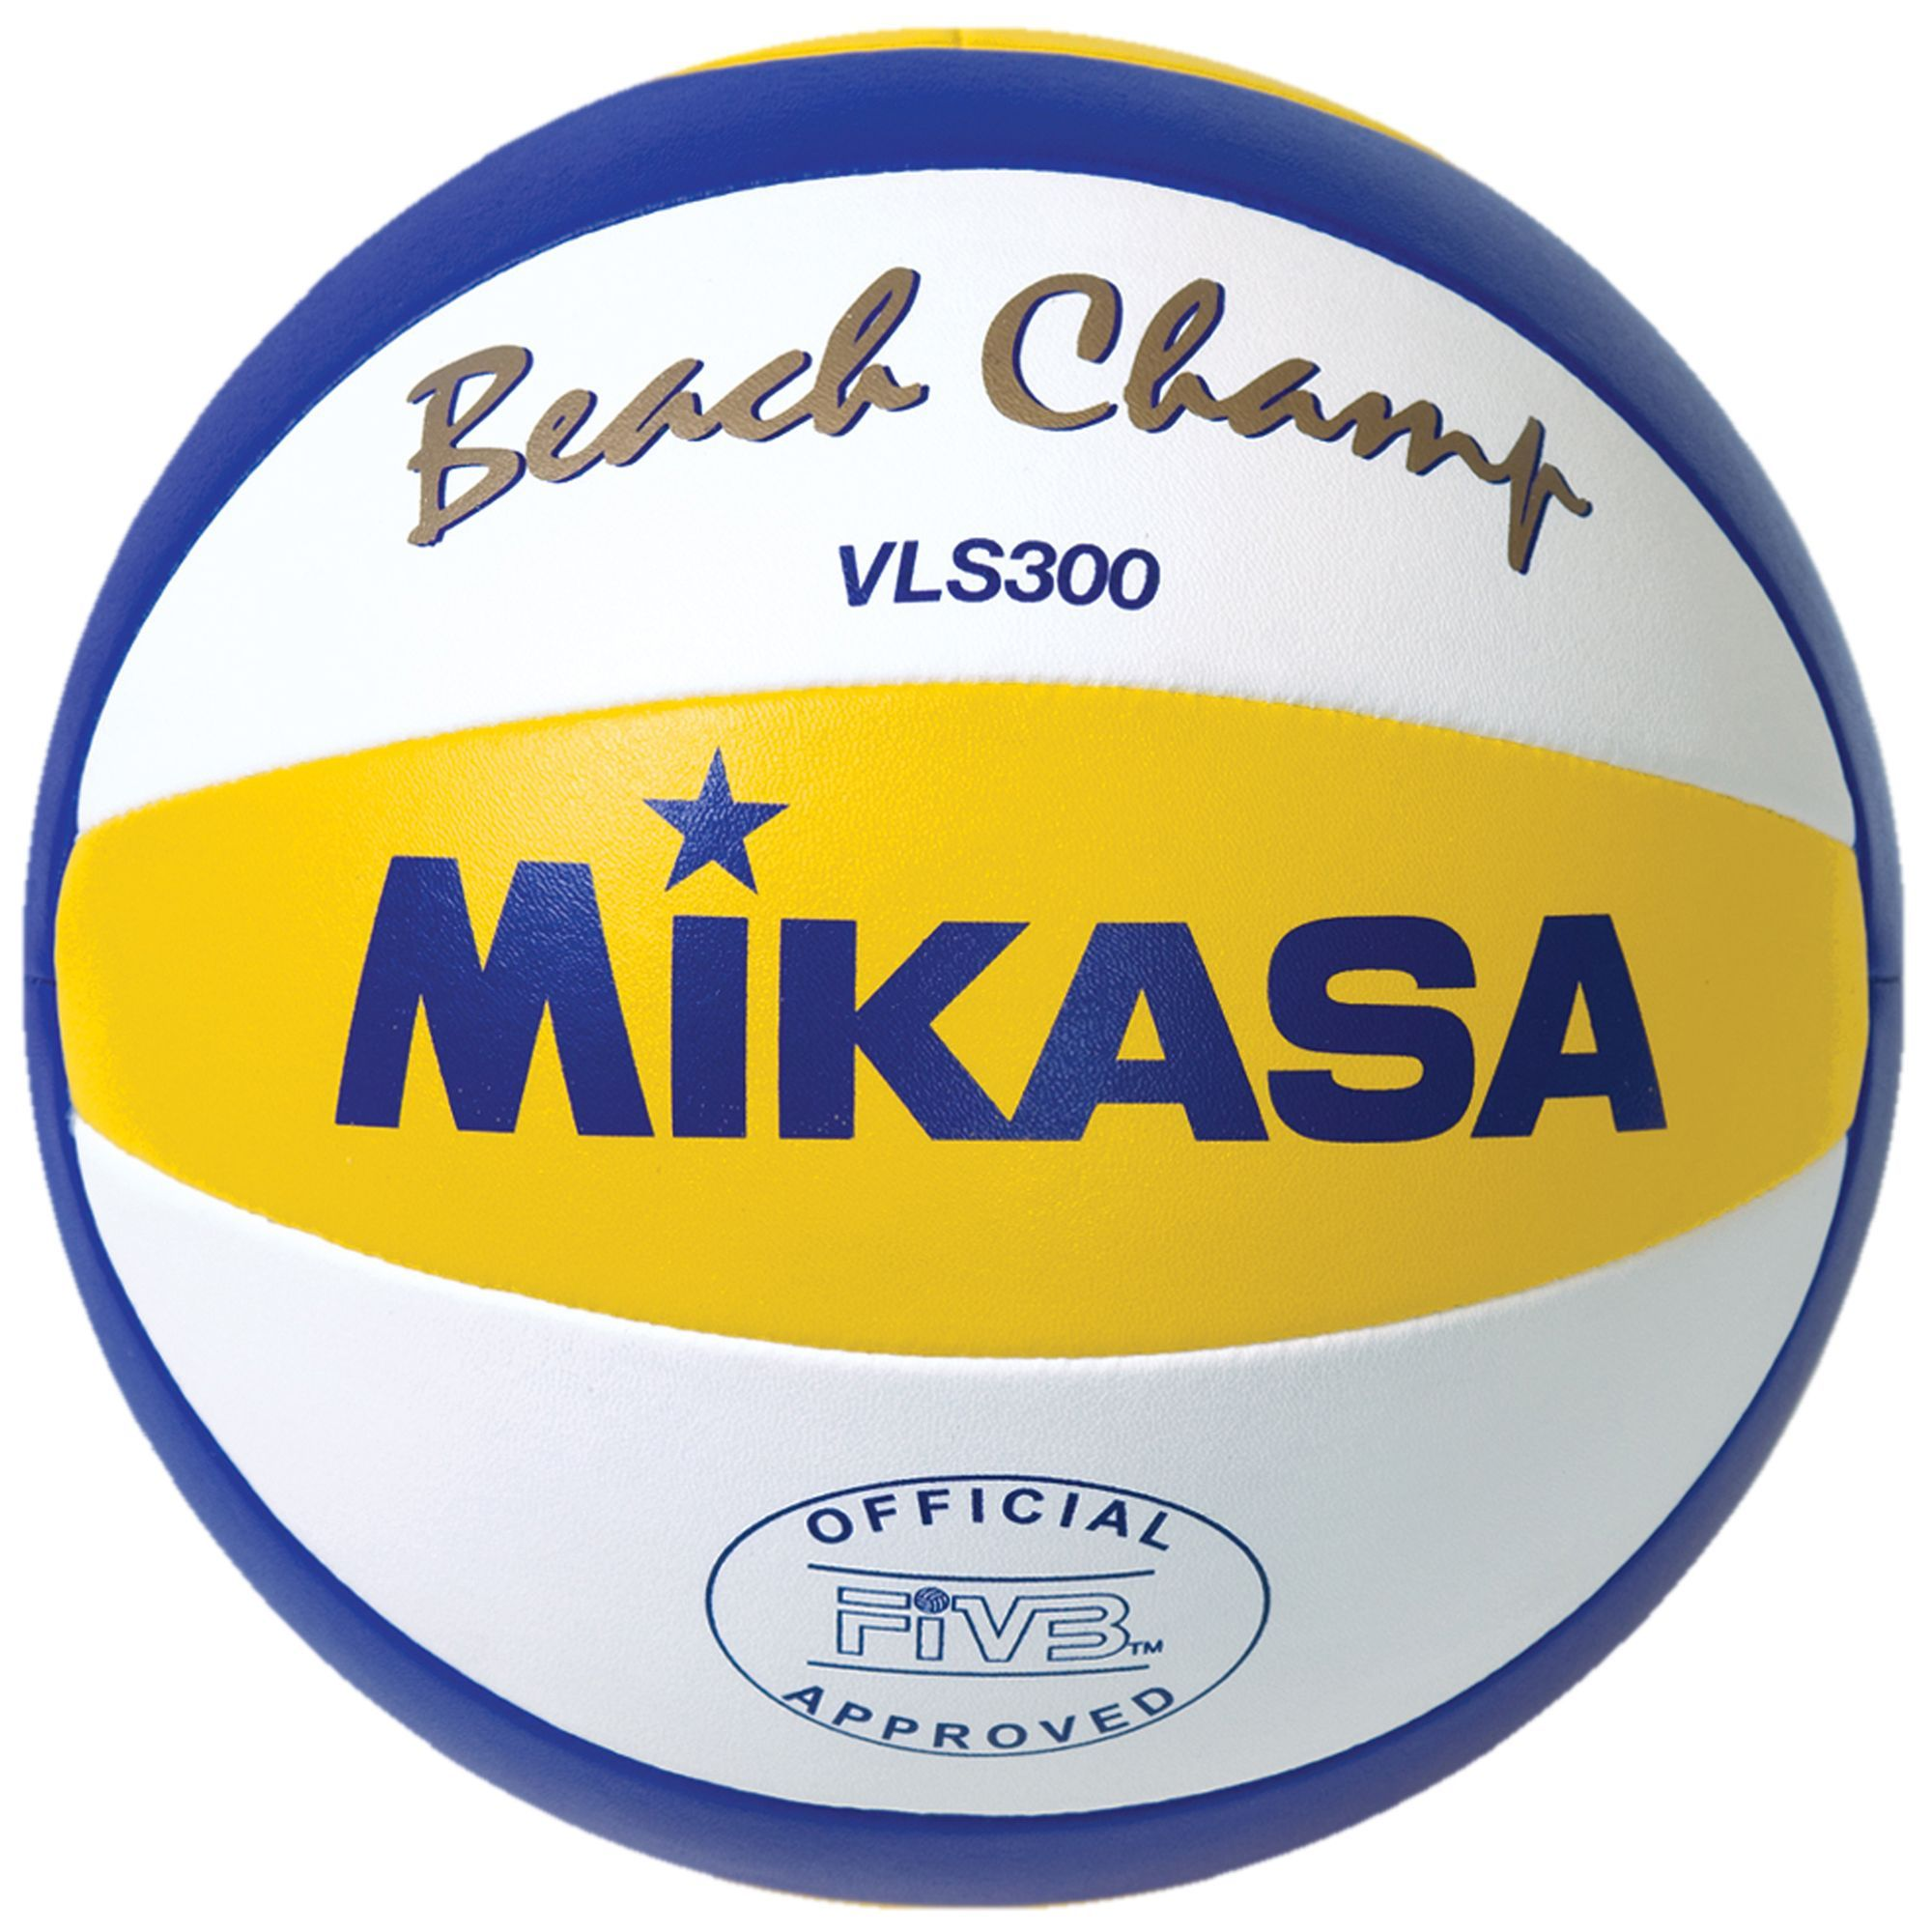 Mikasa Official Fivb Beach Volleyball Size Small In 2020 Beach Volleyball Fivb Beach Volleyball Mikasa